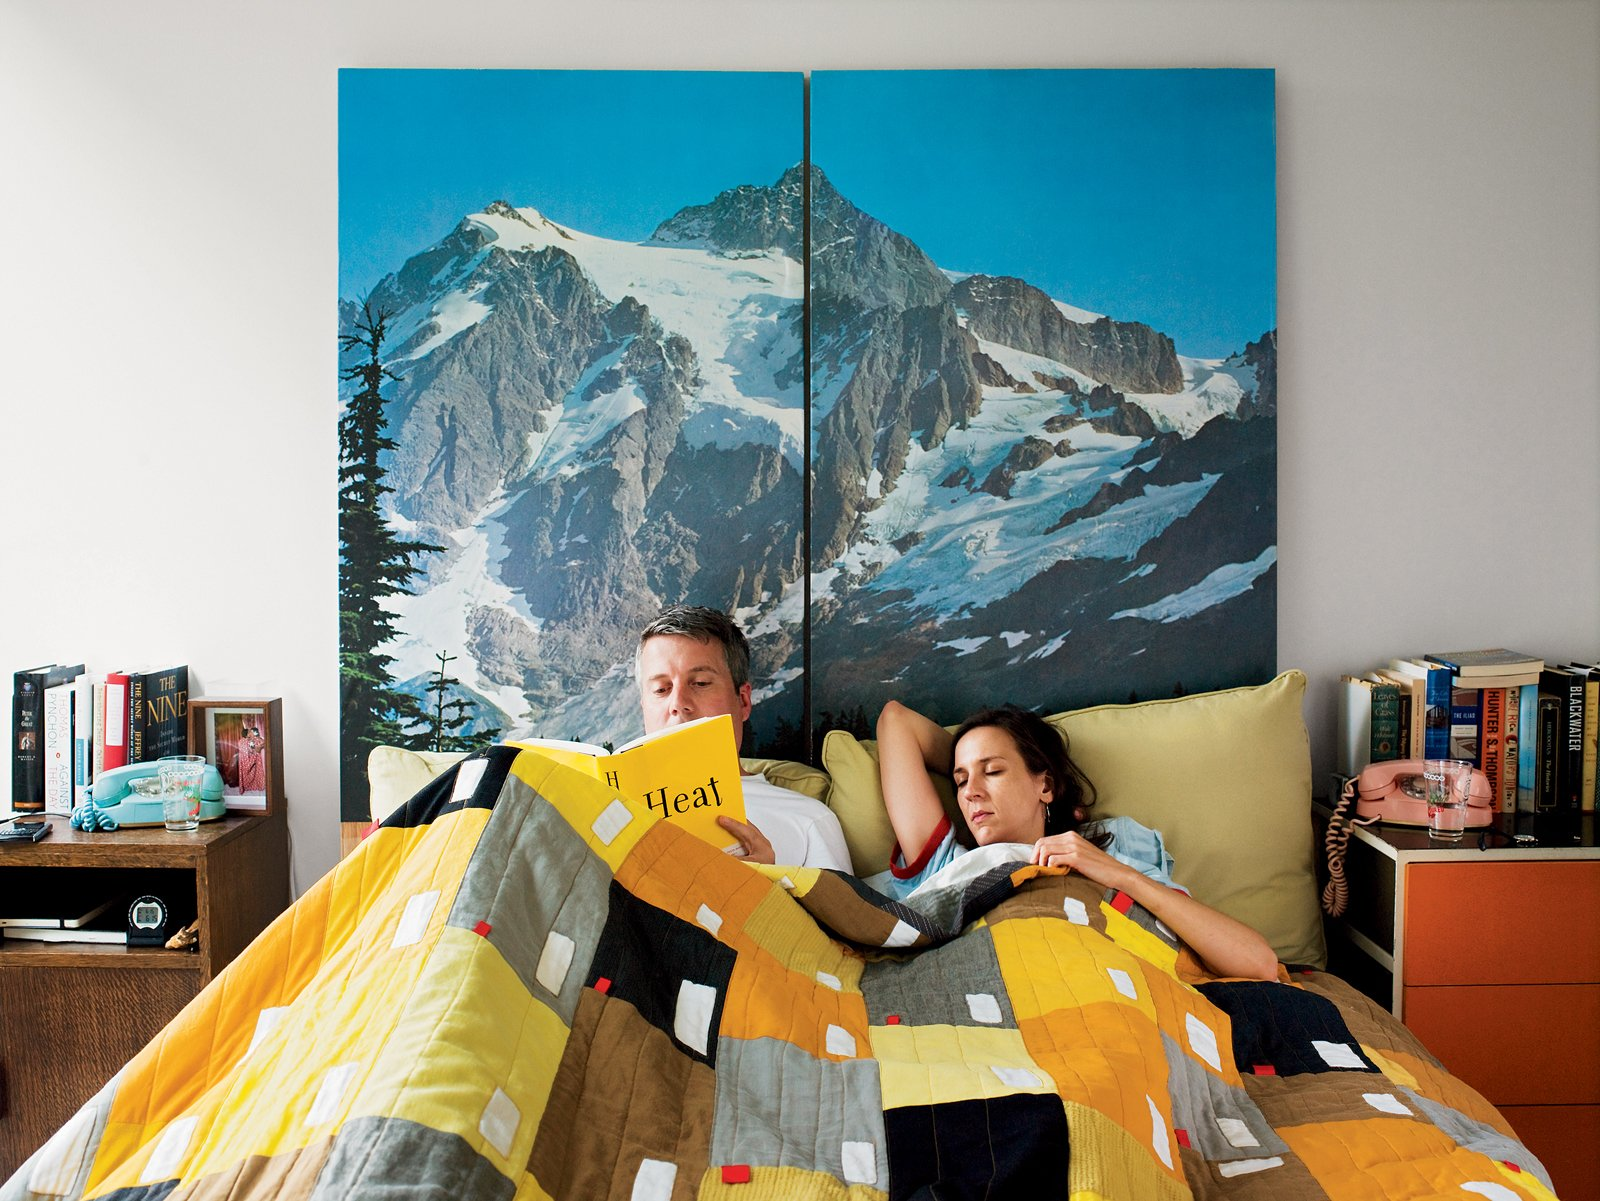 Toby Barlow and Keira Alexandra enjoy a leisurely Alpine morning in bed in their Detroit high-rise home.  Bedrooms by Dwell from Beautiful Bedrooms